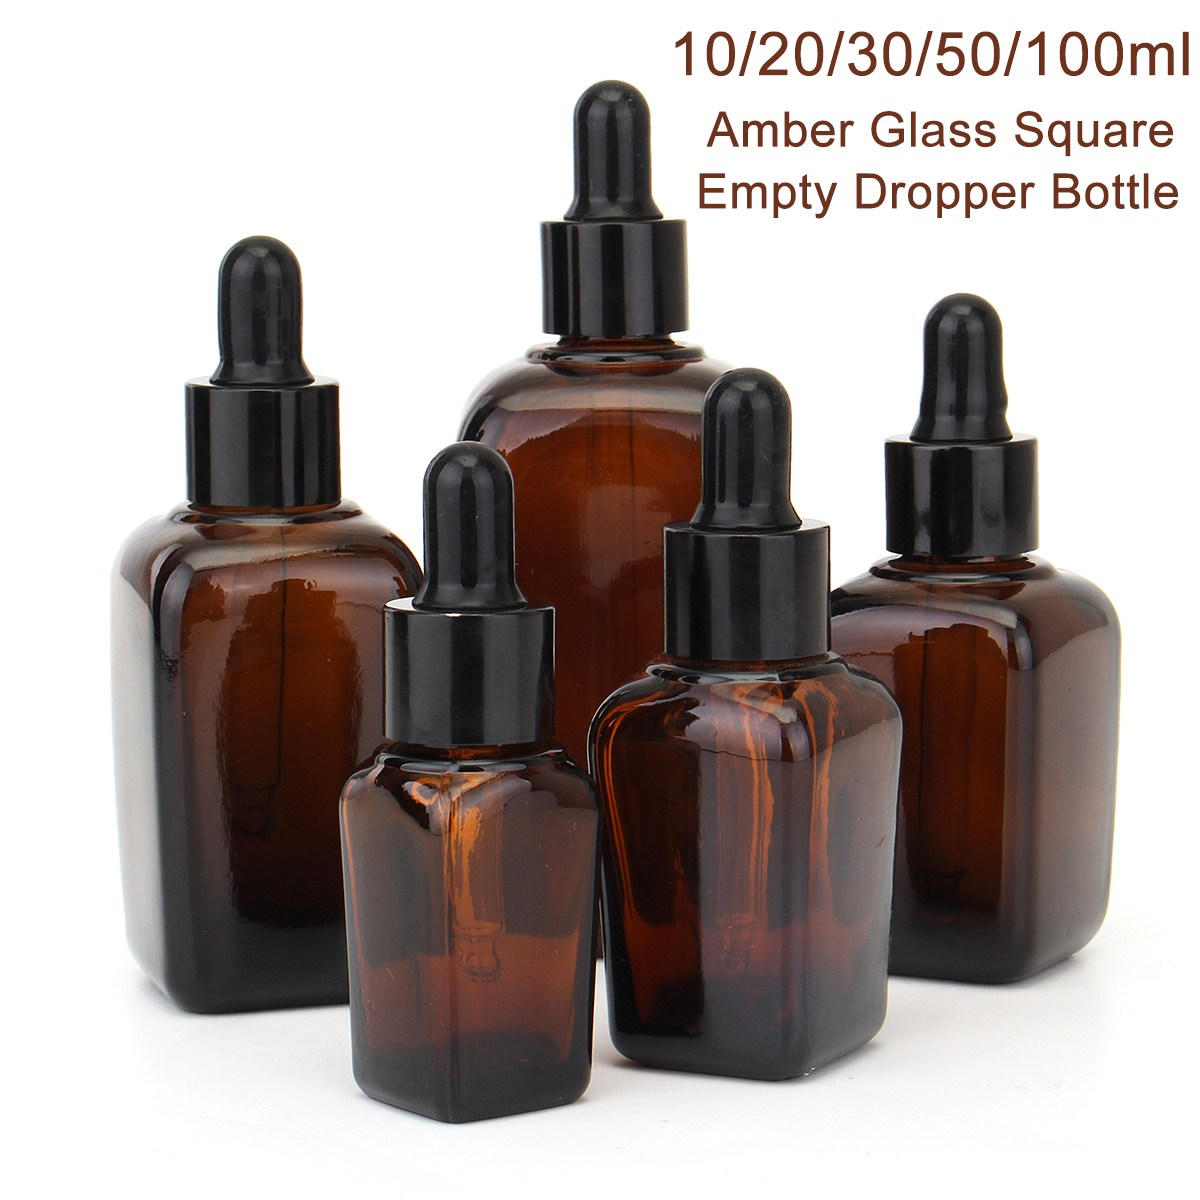 5pcs Square Glass Dropper Bottle With Eye Pipette Empty Amber Aromatherapy Essential Oils Bottle Containers 10/20/30/50/100ml three 100ml